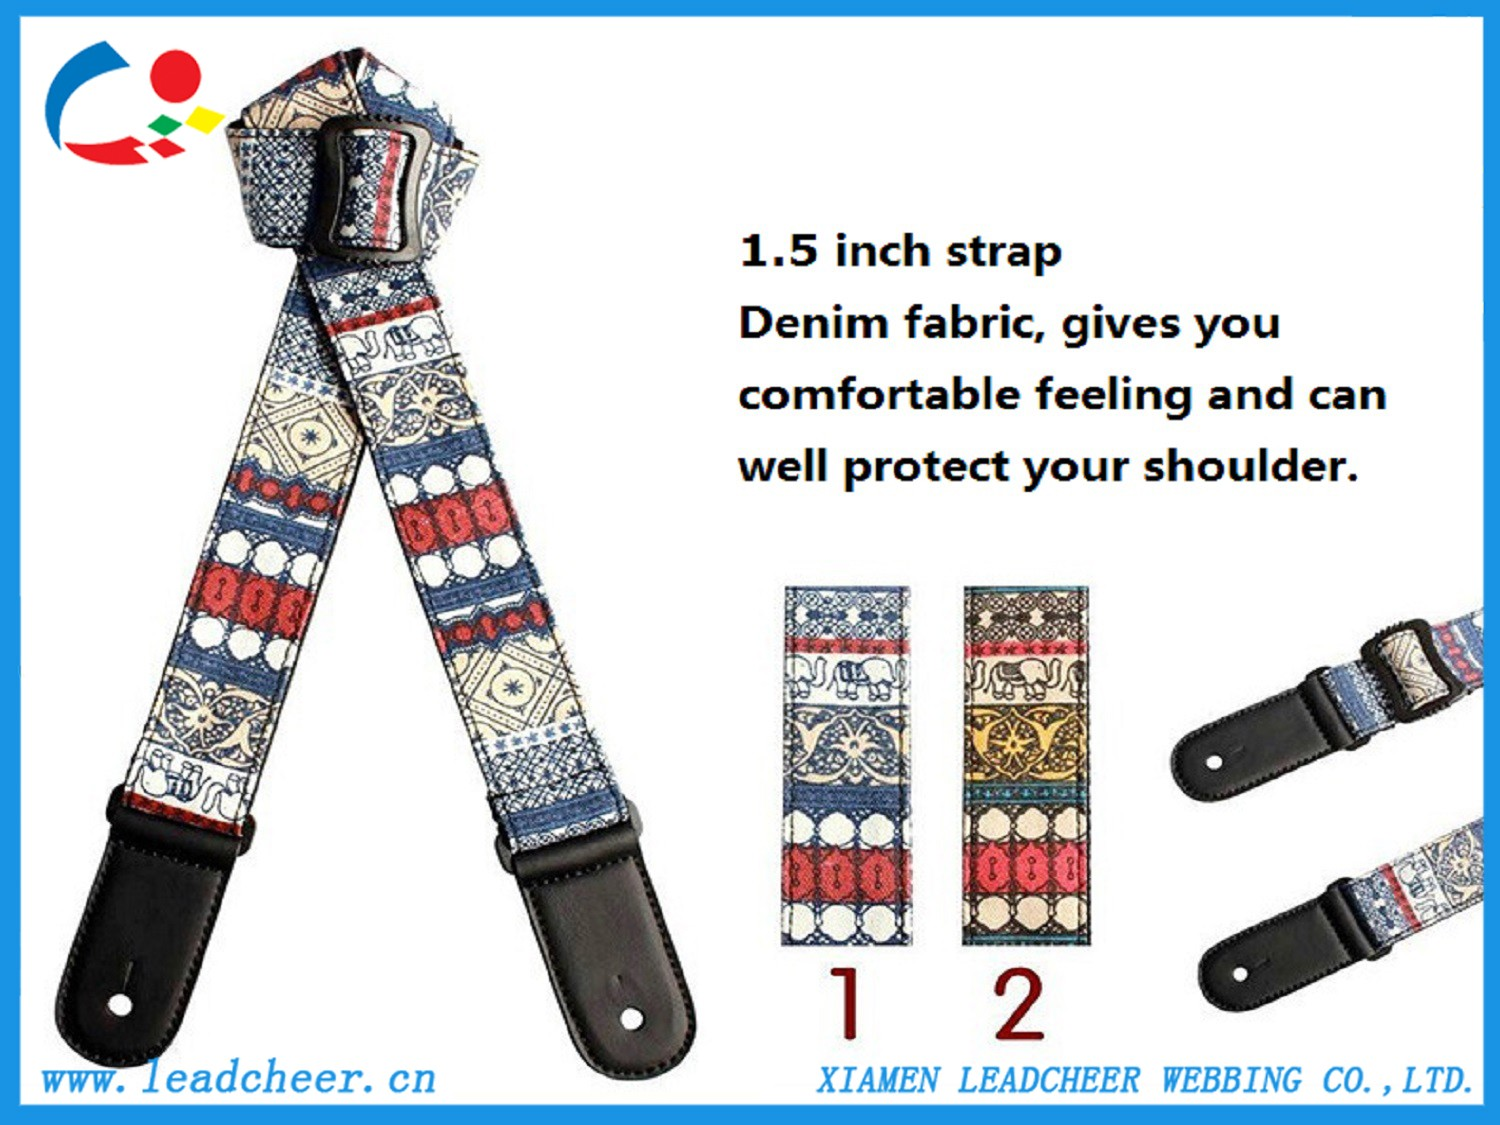 High quality Factory Directly Sell Cotton 1.5 Inch Ukulele Strap Quotes,China Factory Directly Sell Cotton 1.5 Inch Ukulele Strap Factory,Factory Directly Sell Cotton 1.5 Inch Ukulele Strap Purchasing